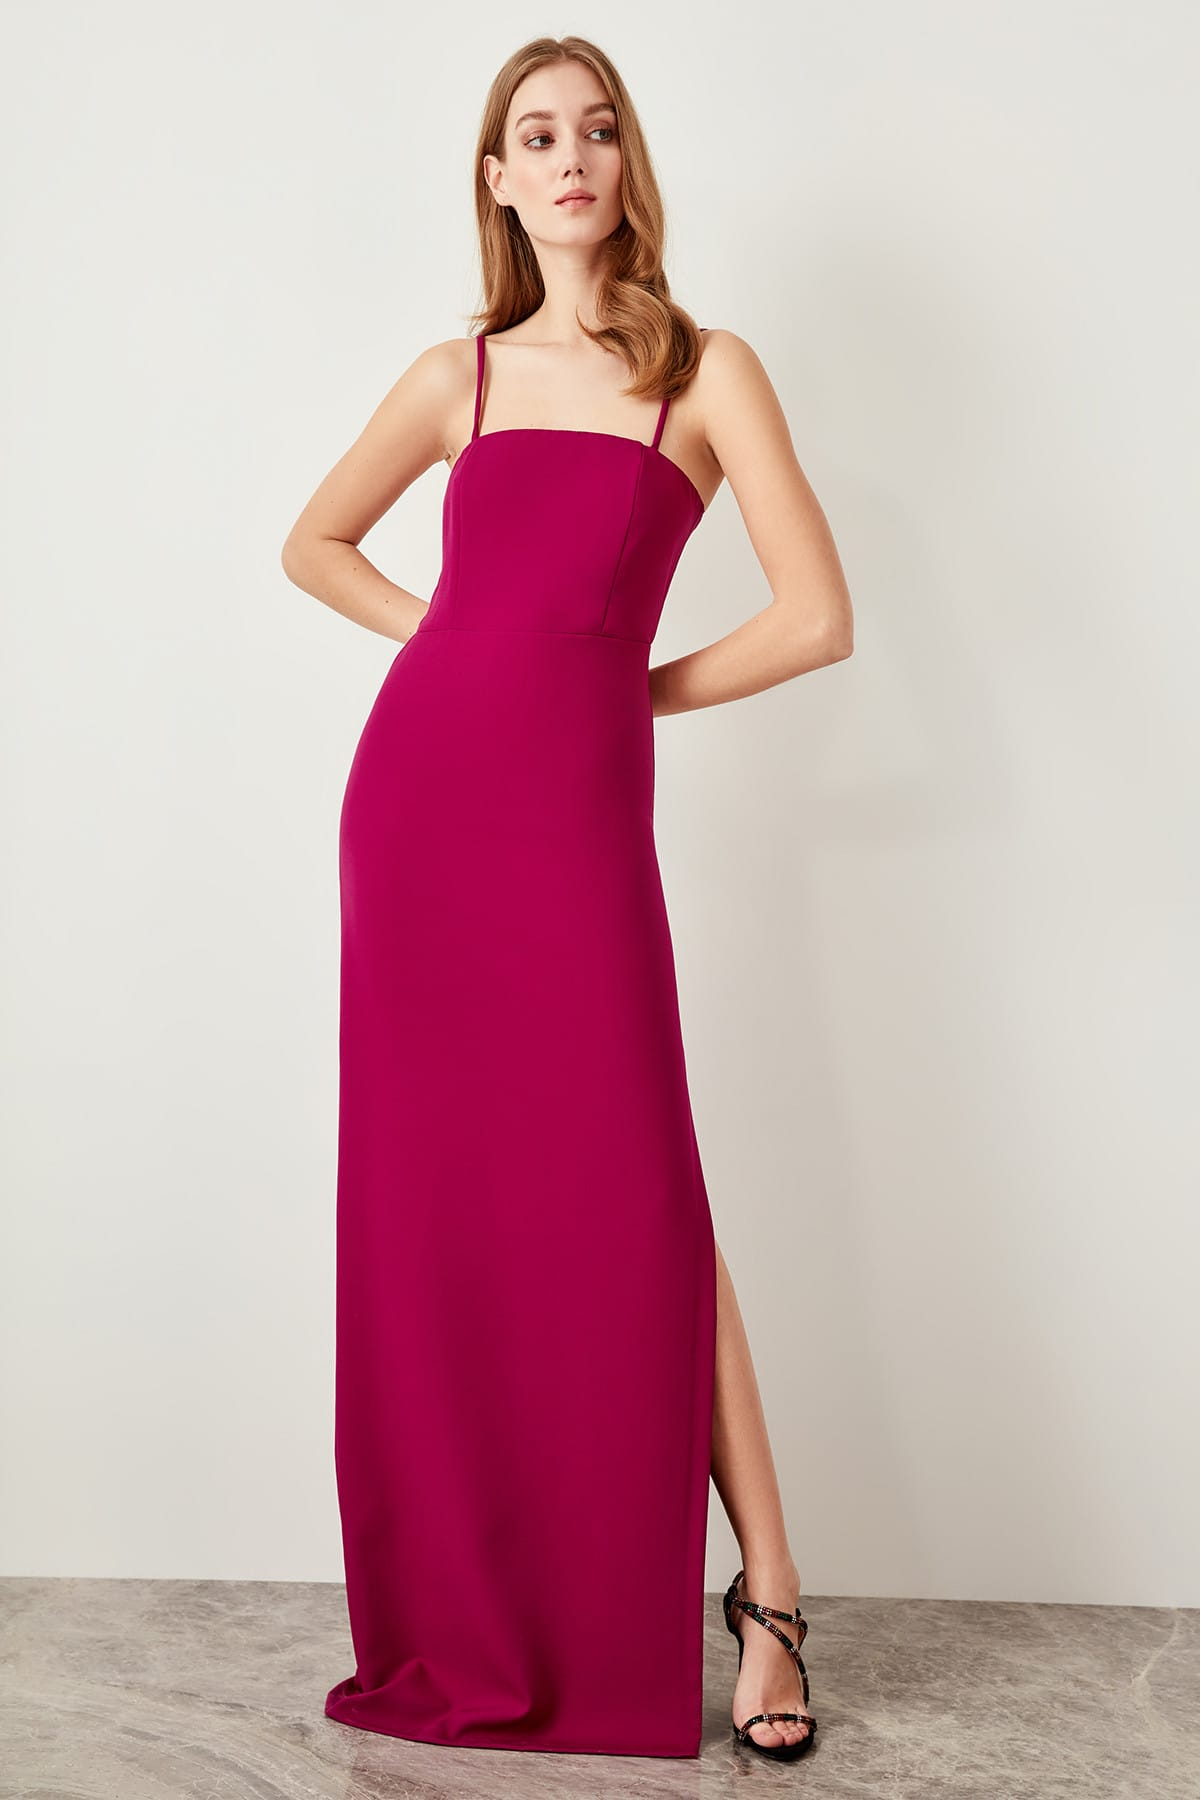 b78d3d6f24254 US $21.26 49% OFF|Aliexpress.com : Buy Trendyol Plum Evening Dress Slit  TPRSS19FZ0237 from Reliable Evening Dresses suppliers on Trendyol Party  Store